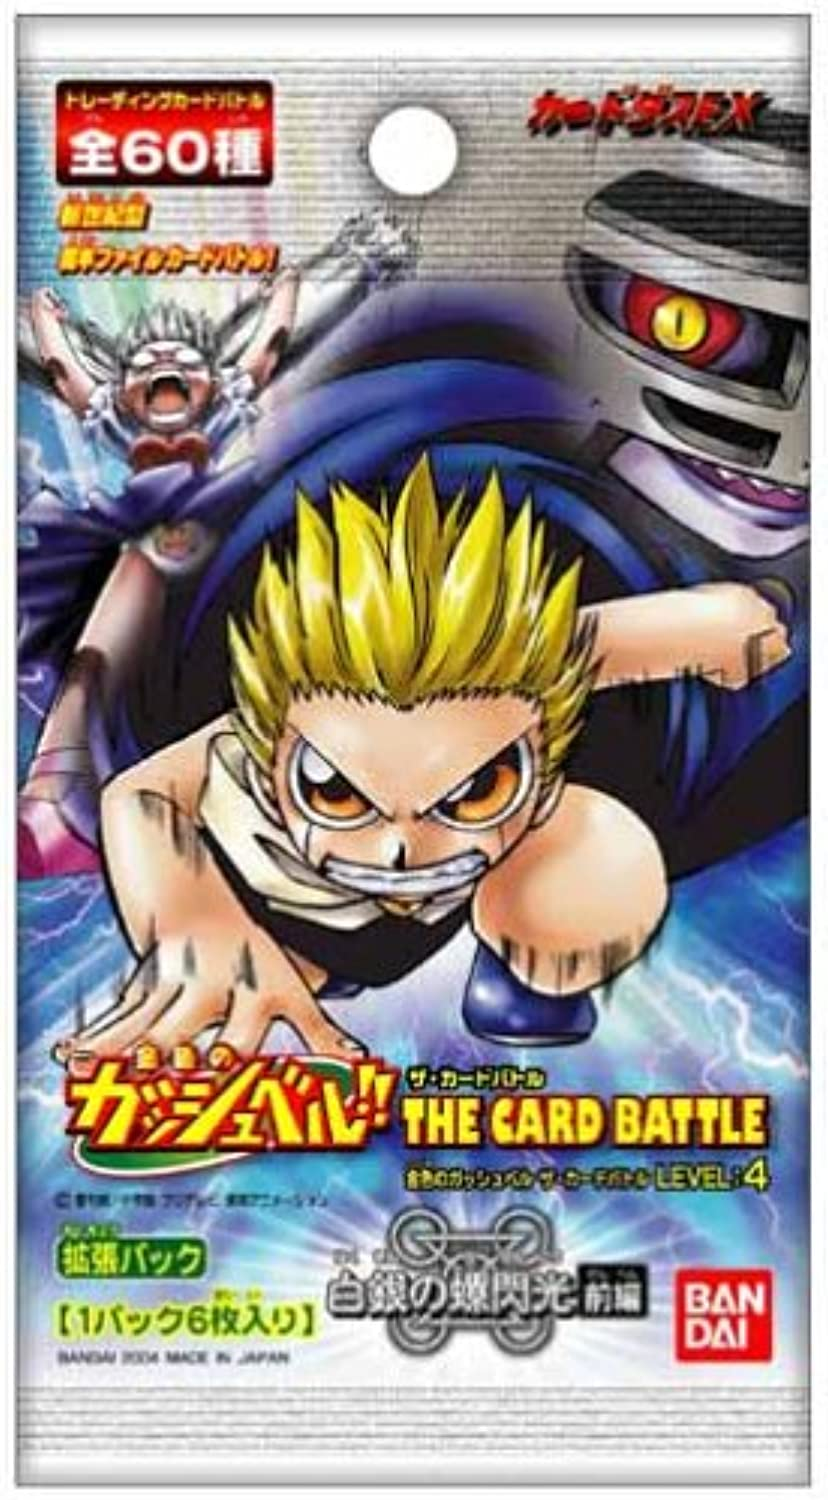 Konjiki No Gash Bell  Expansion Pack BOX the Card Battle Level4 [Threaded Flash Part of Silver Blaze]